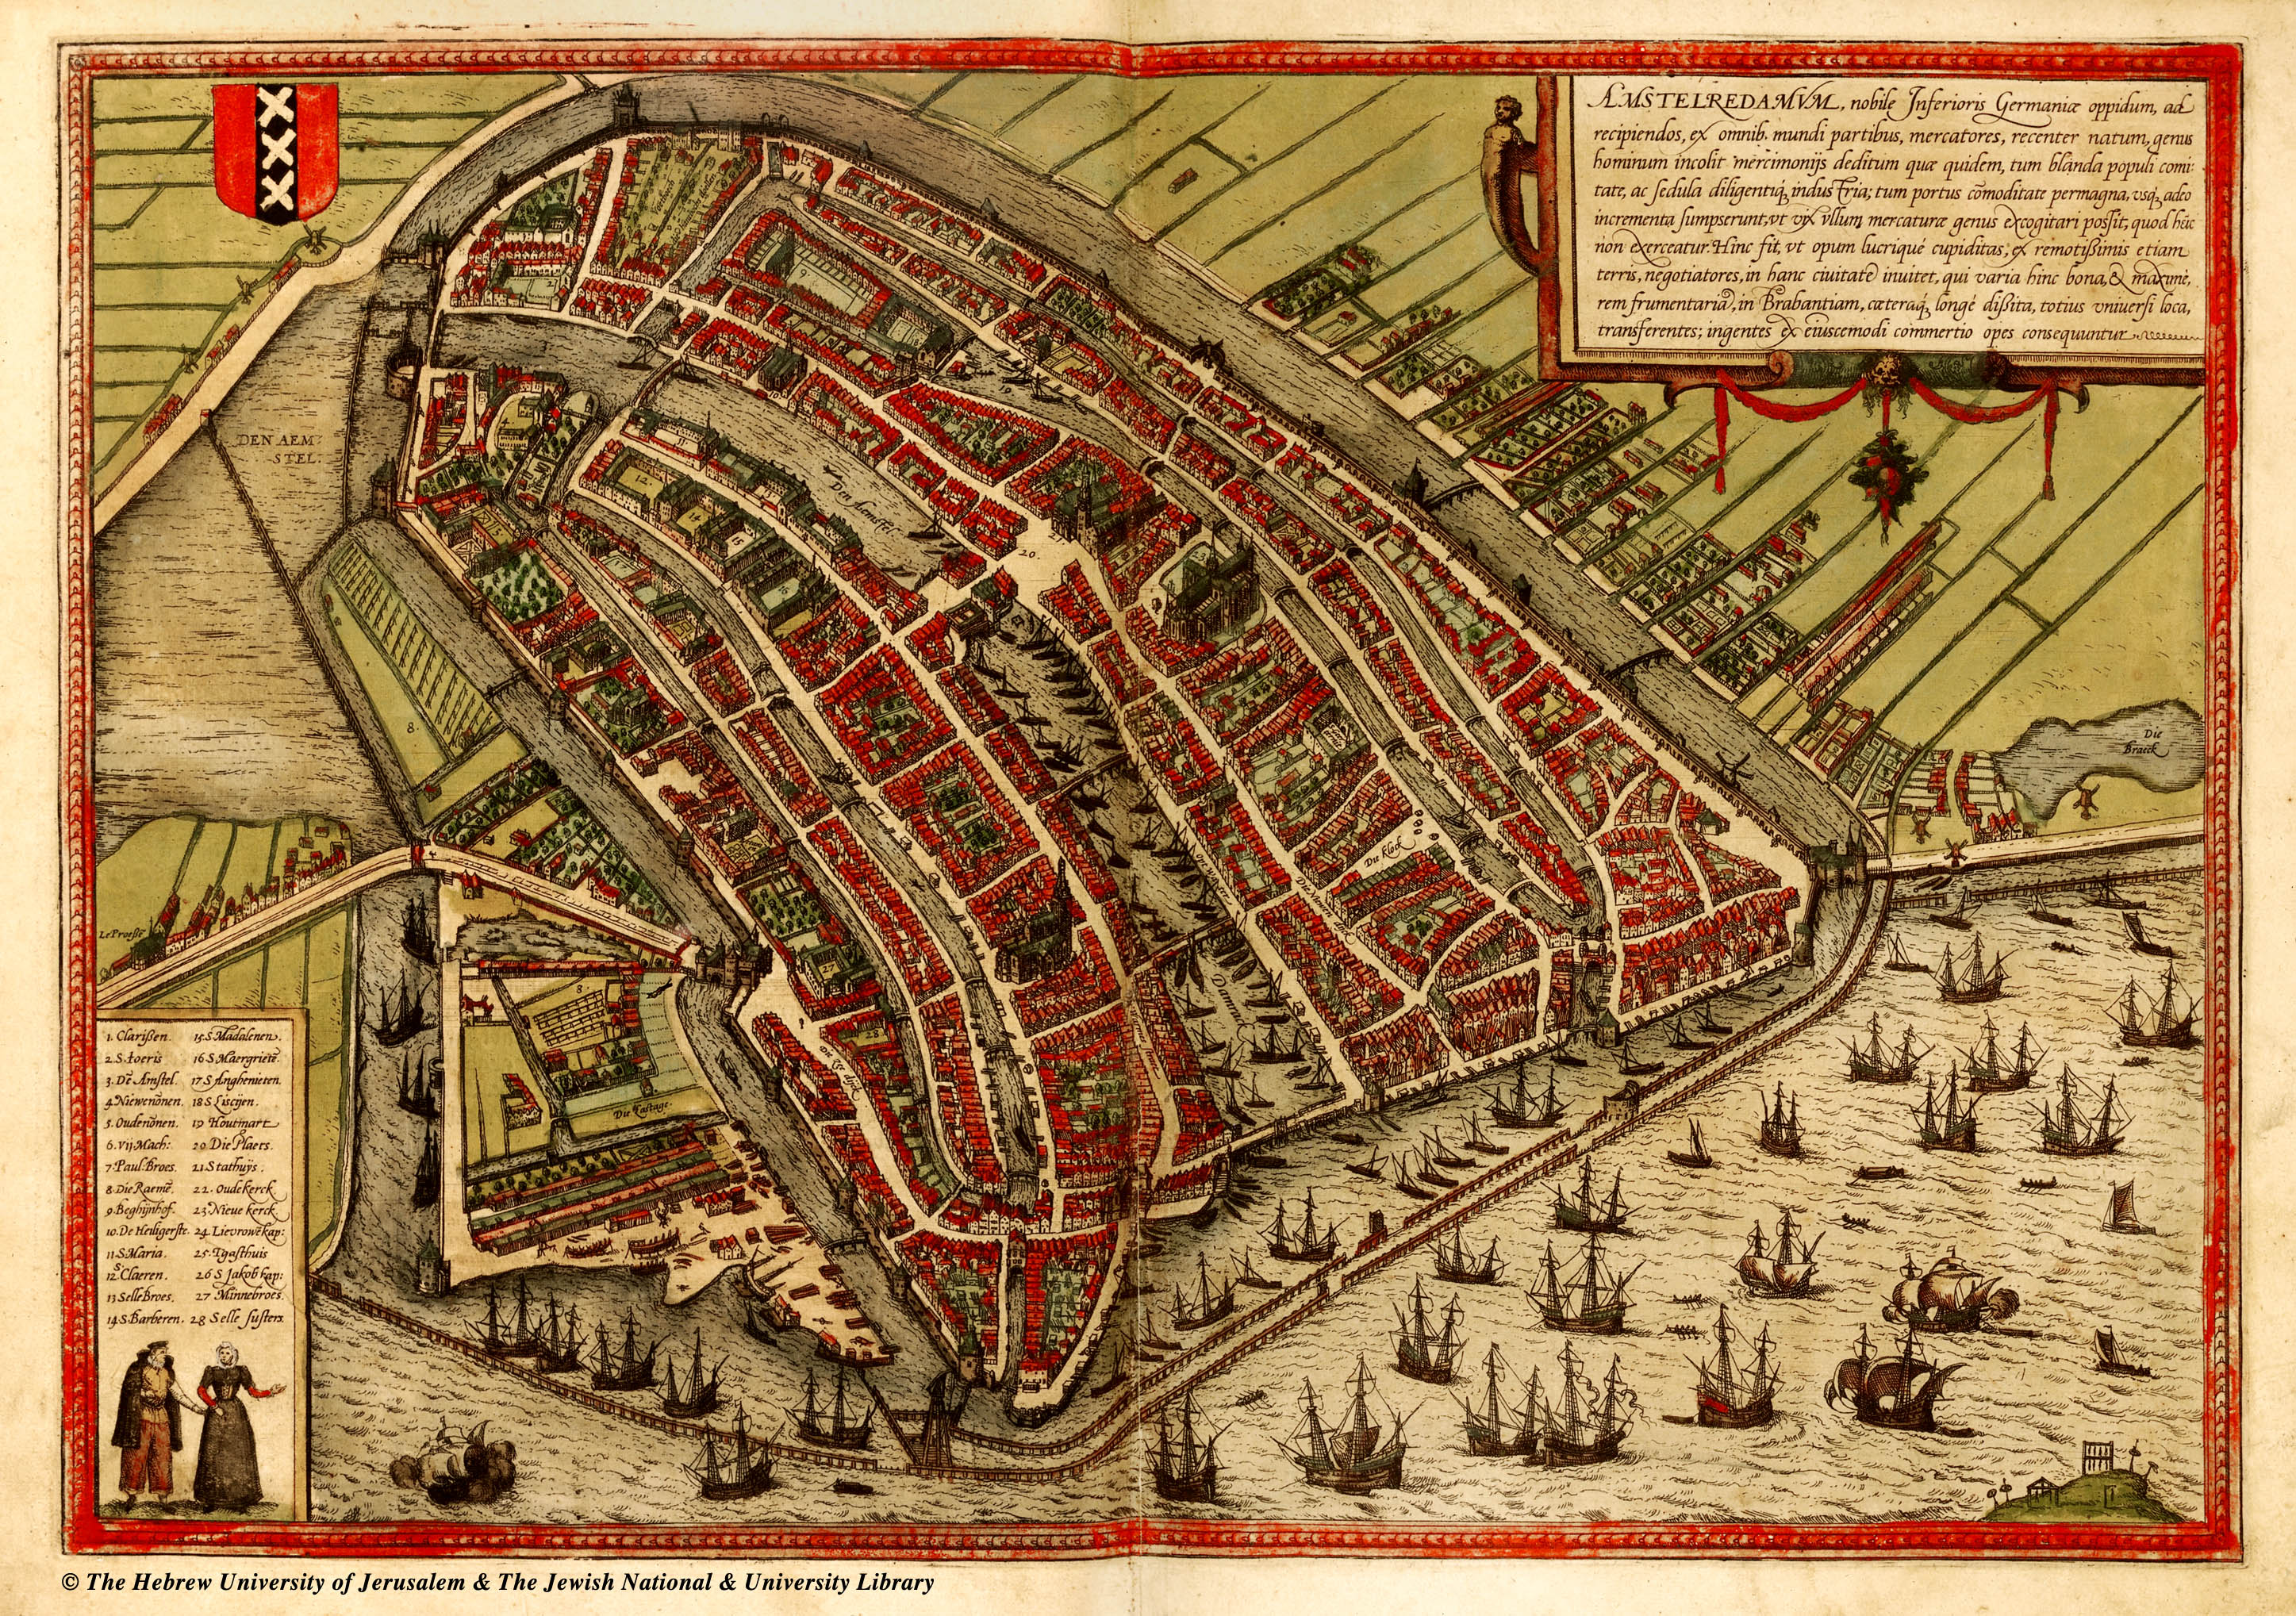 A map of Amsterdam in the mid 16th century, Oude Kerk can be seen in the lower left section of the city